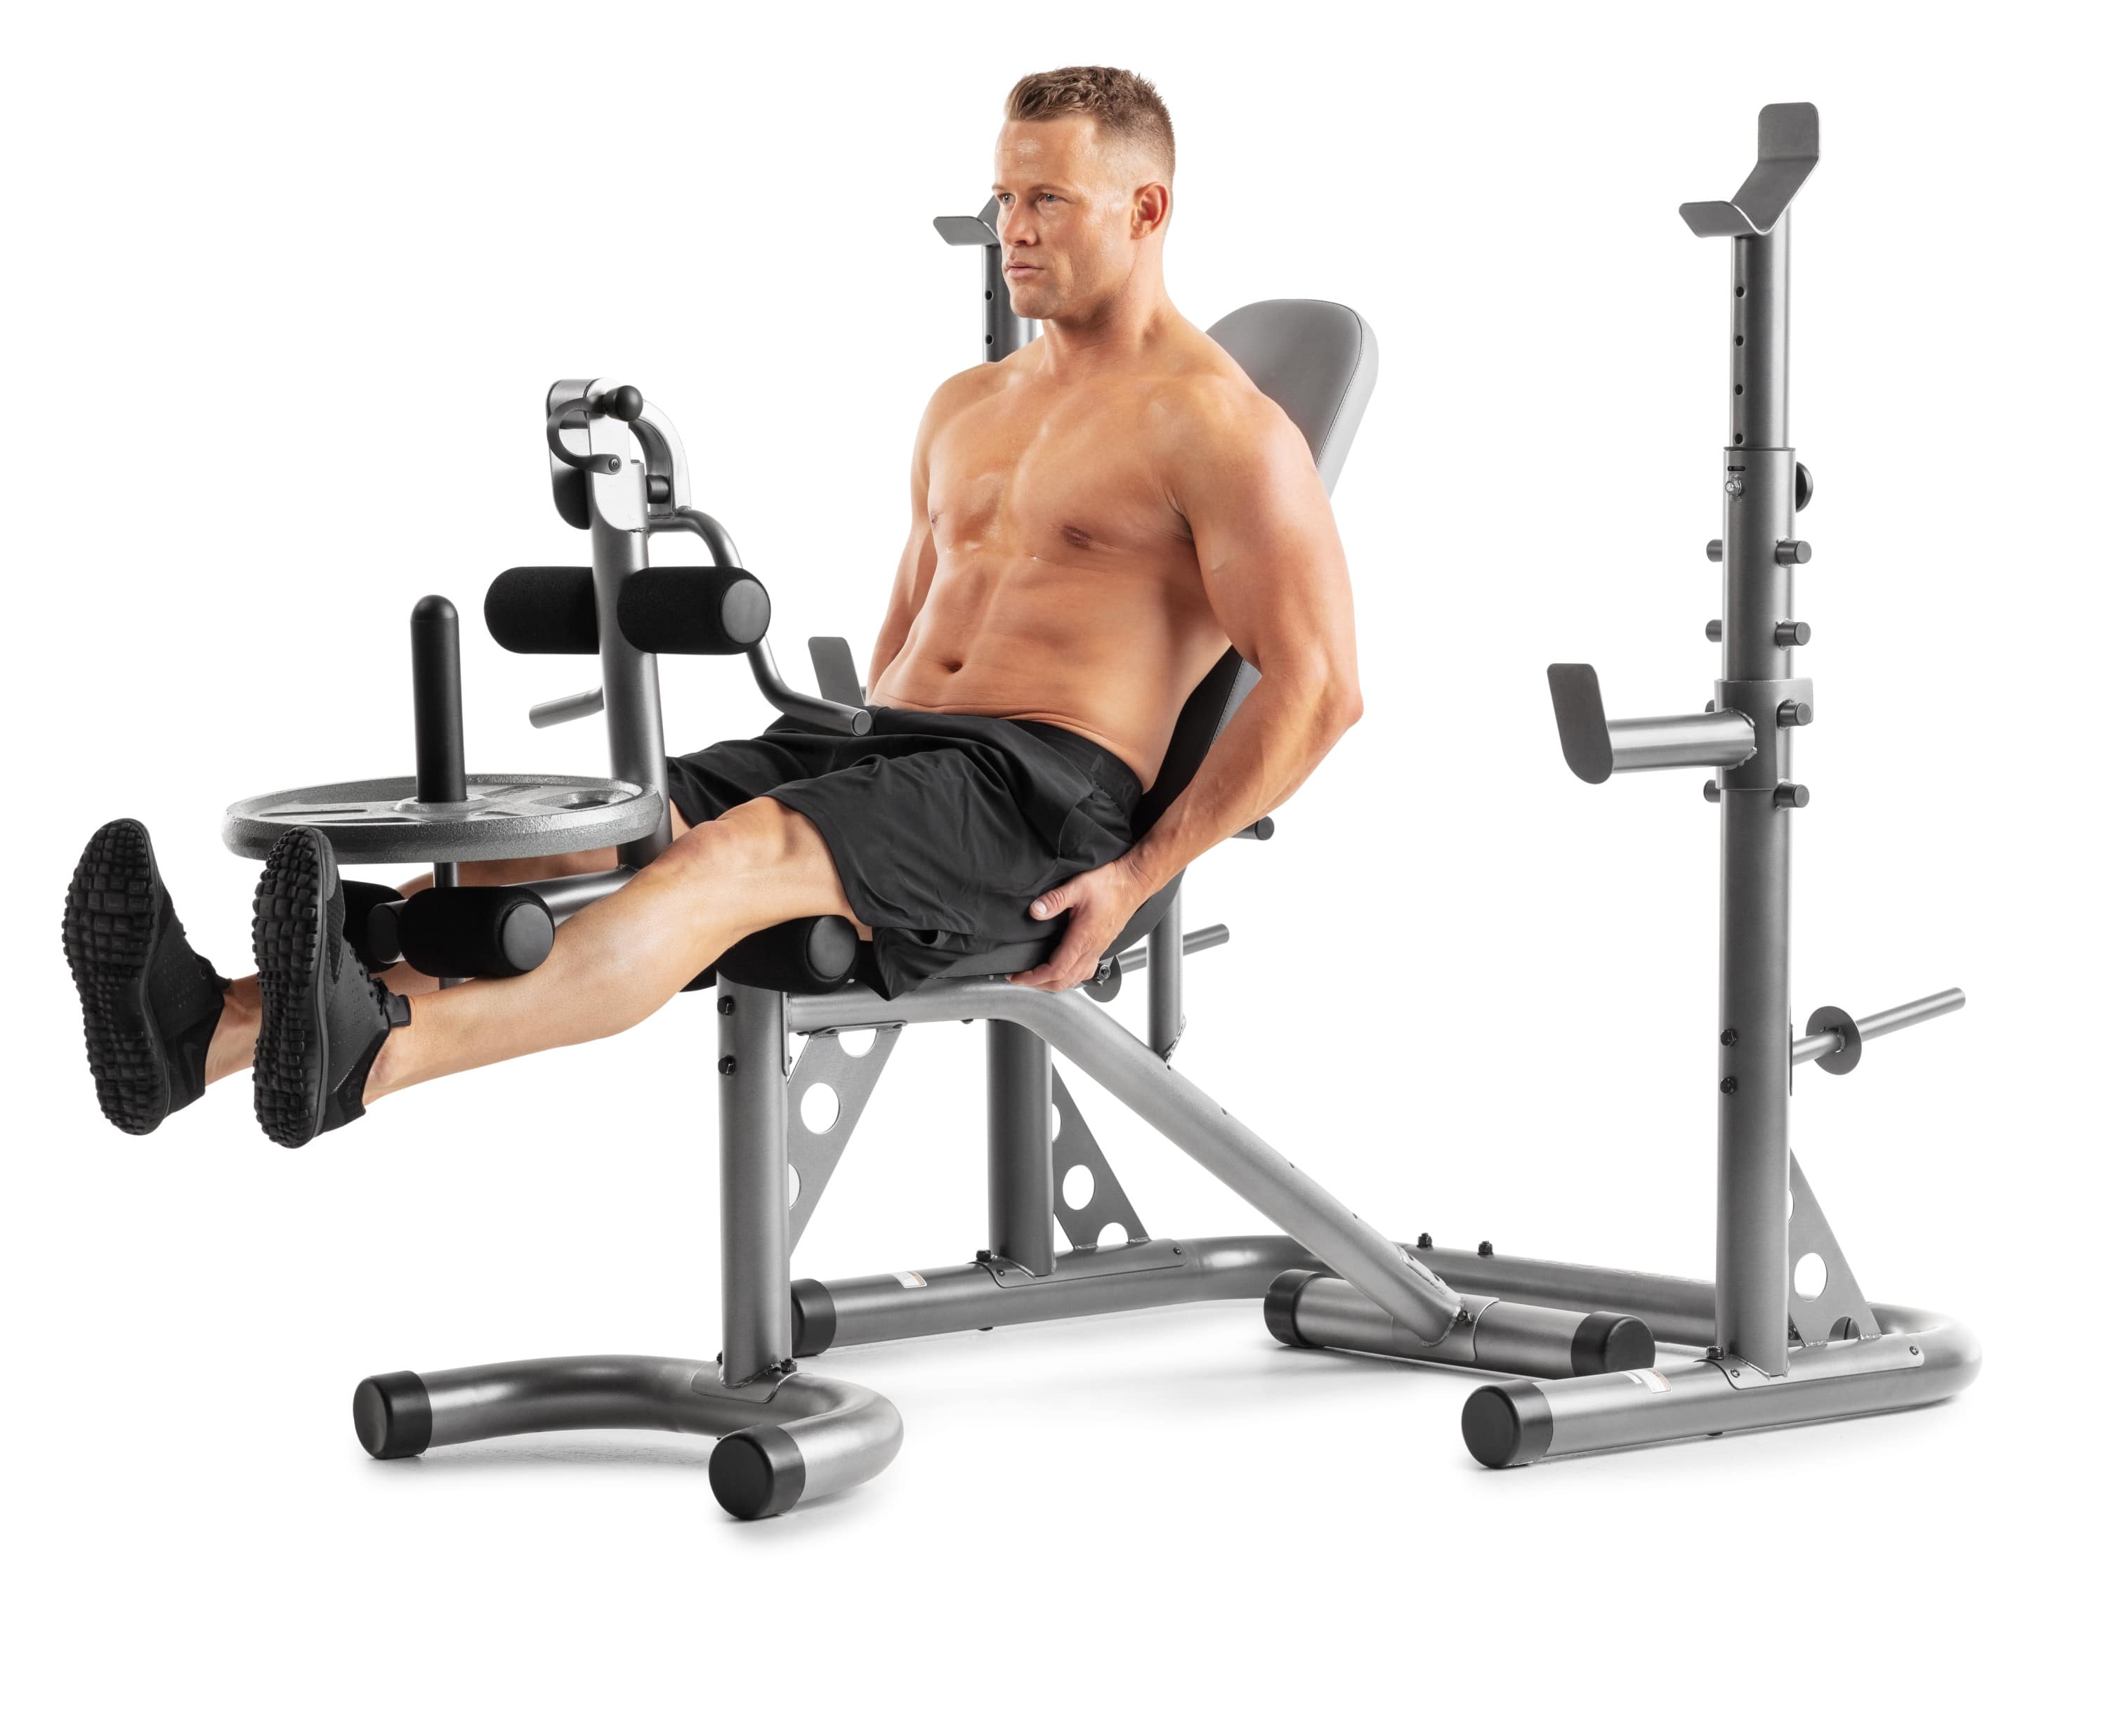 Weider XRS 20 Adjustable Olympic Workout Bench with Independent Squat Rack and Preacher Pad $199.99